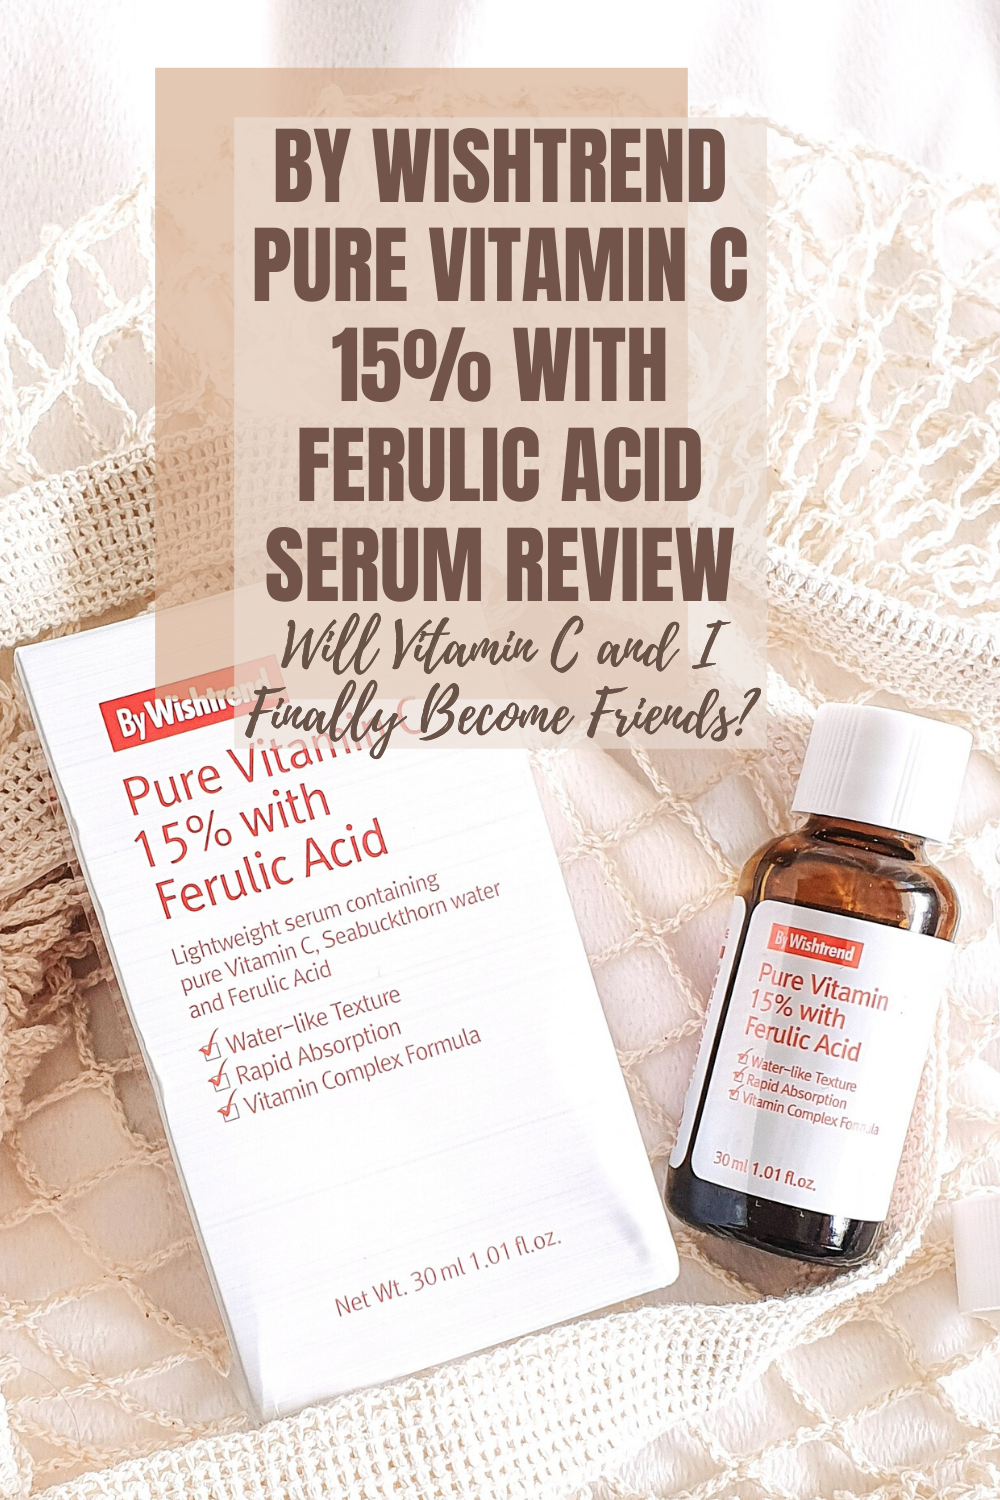 By Wishtrend Pure Vitamin C 15% with Ferulic Acid Serum Review